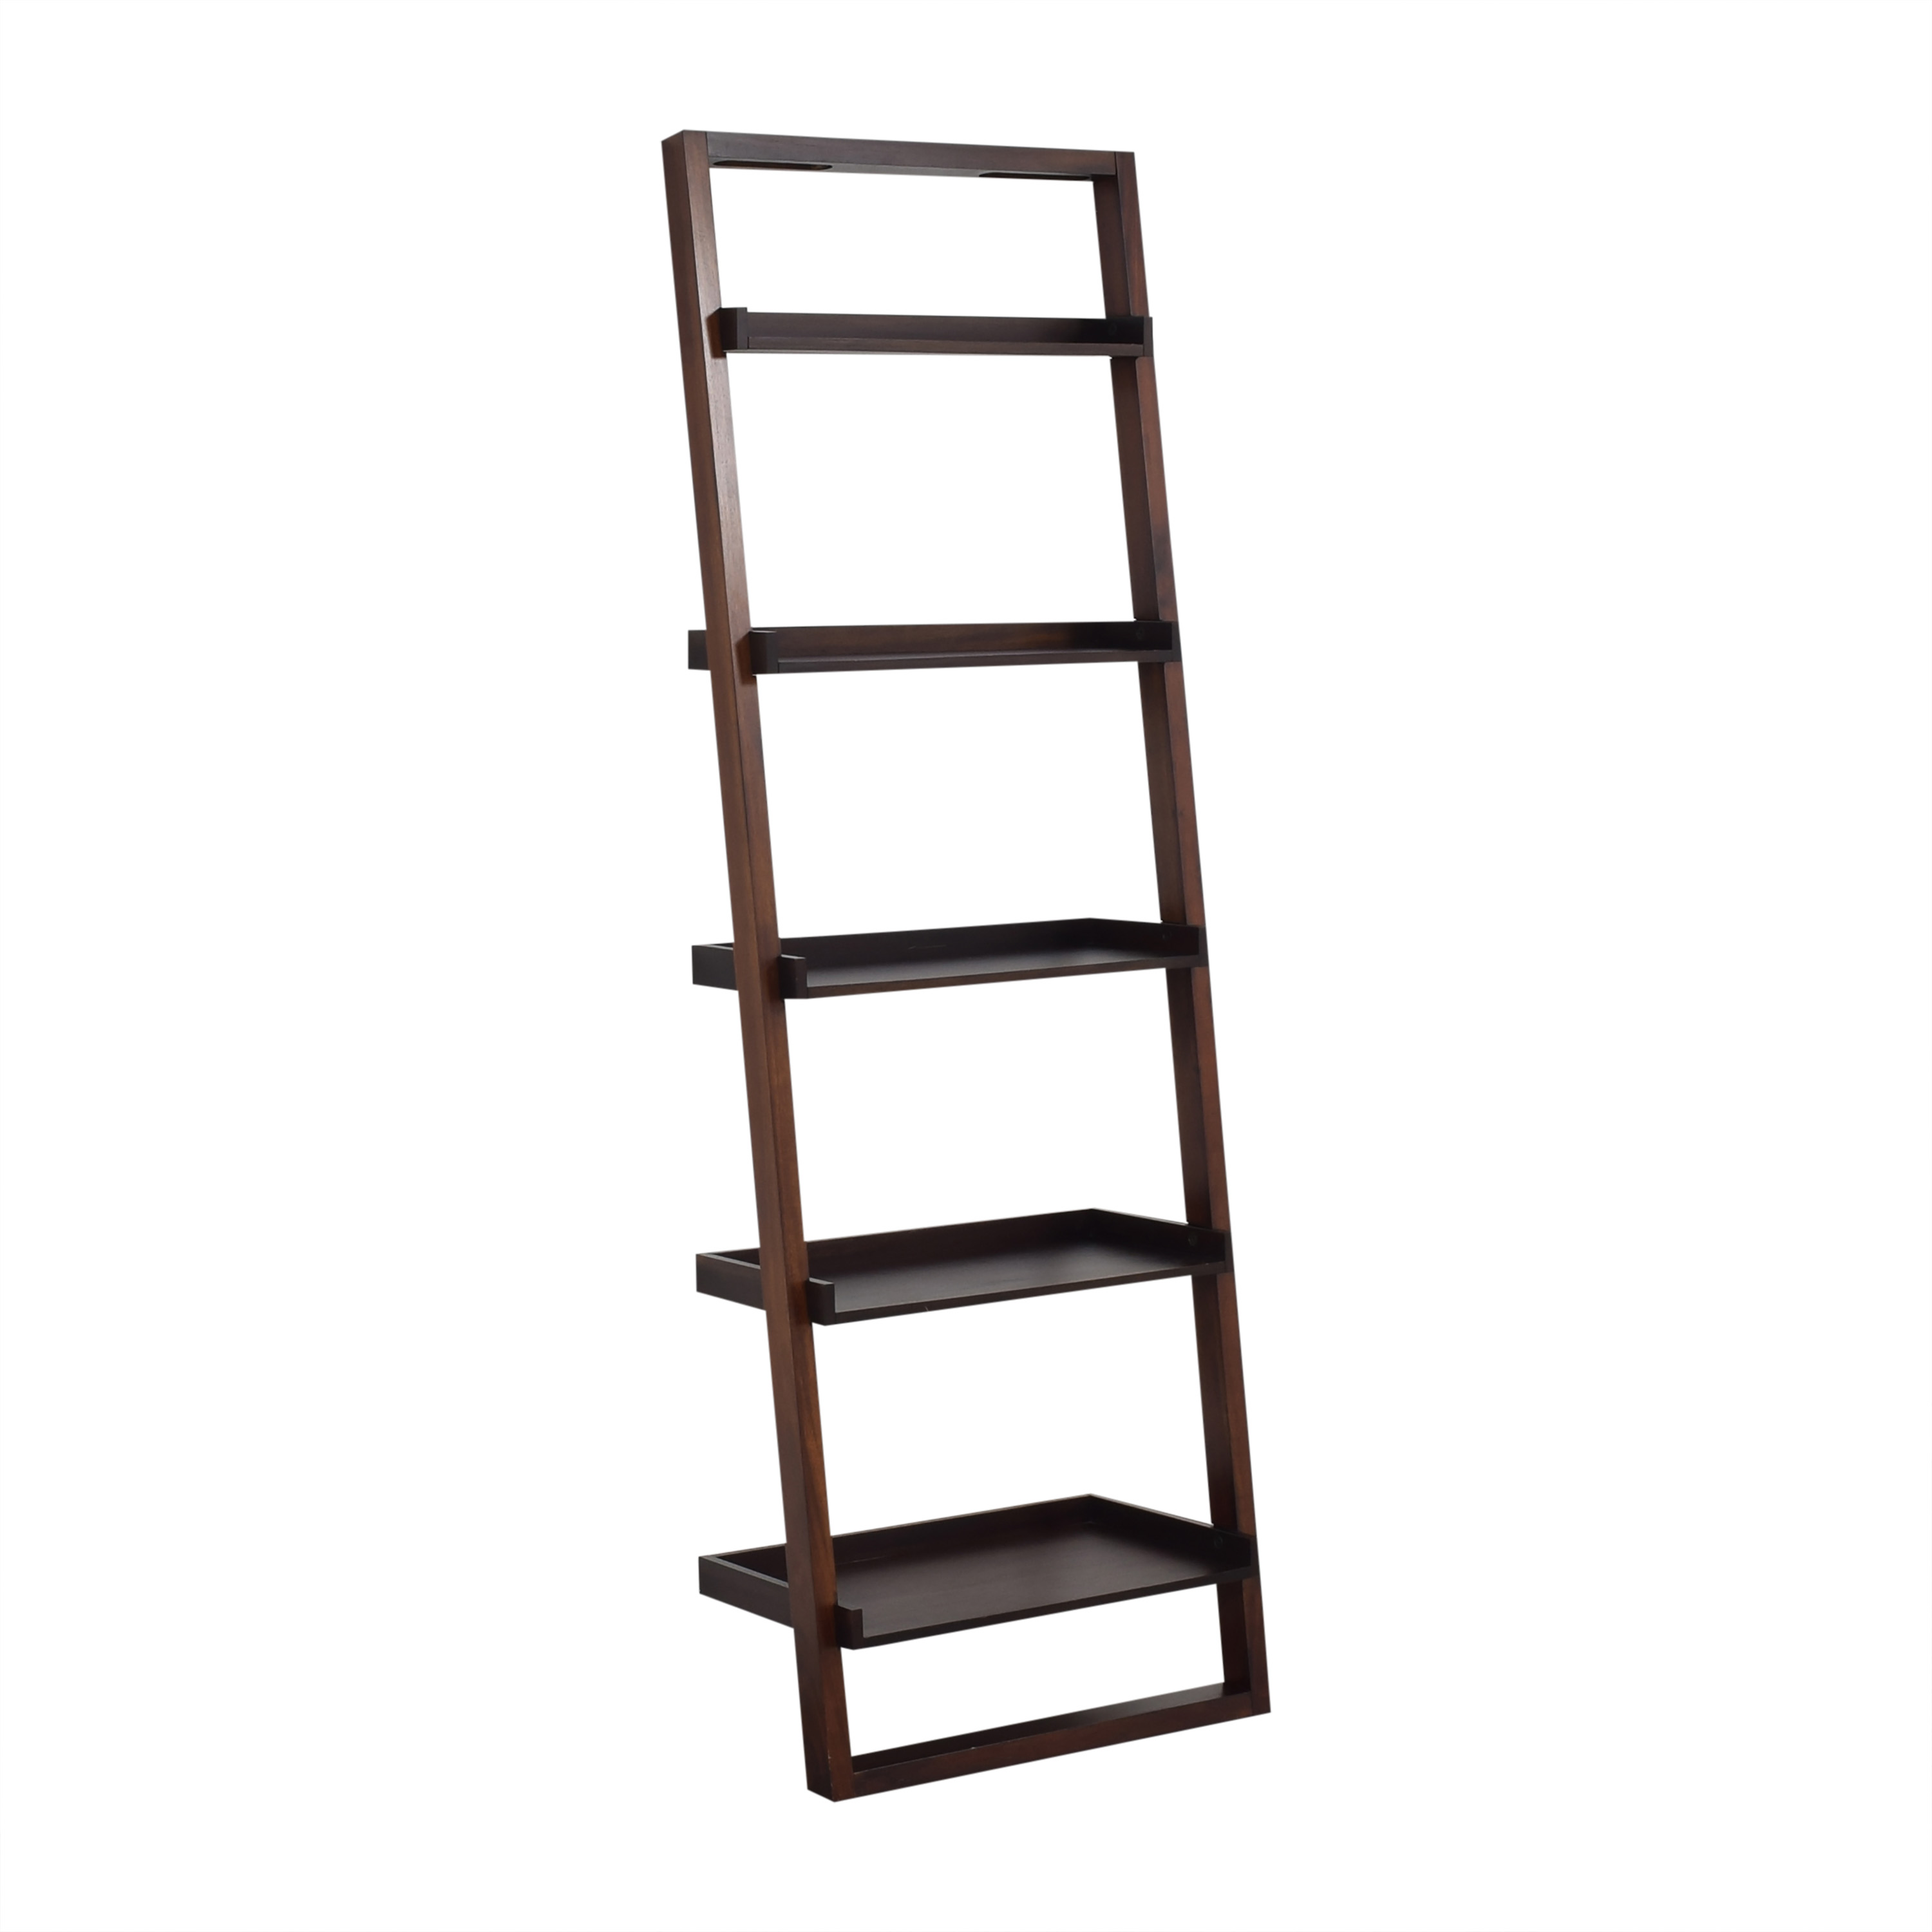 Crate & Barrel Crate & Barrel Sloane Leaning Bookcase second hand